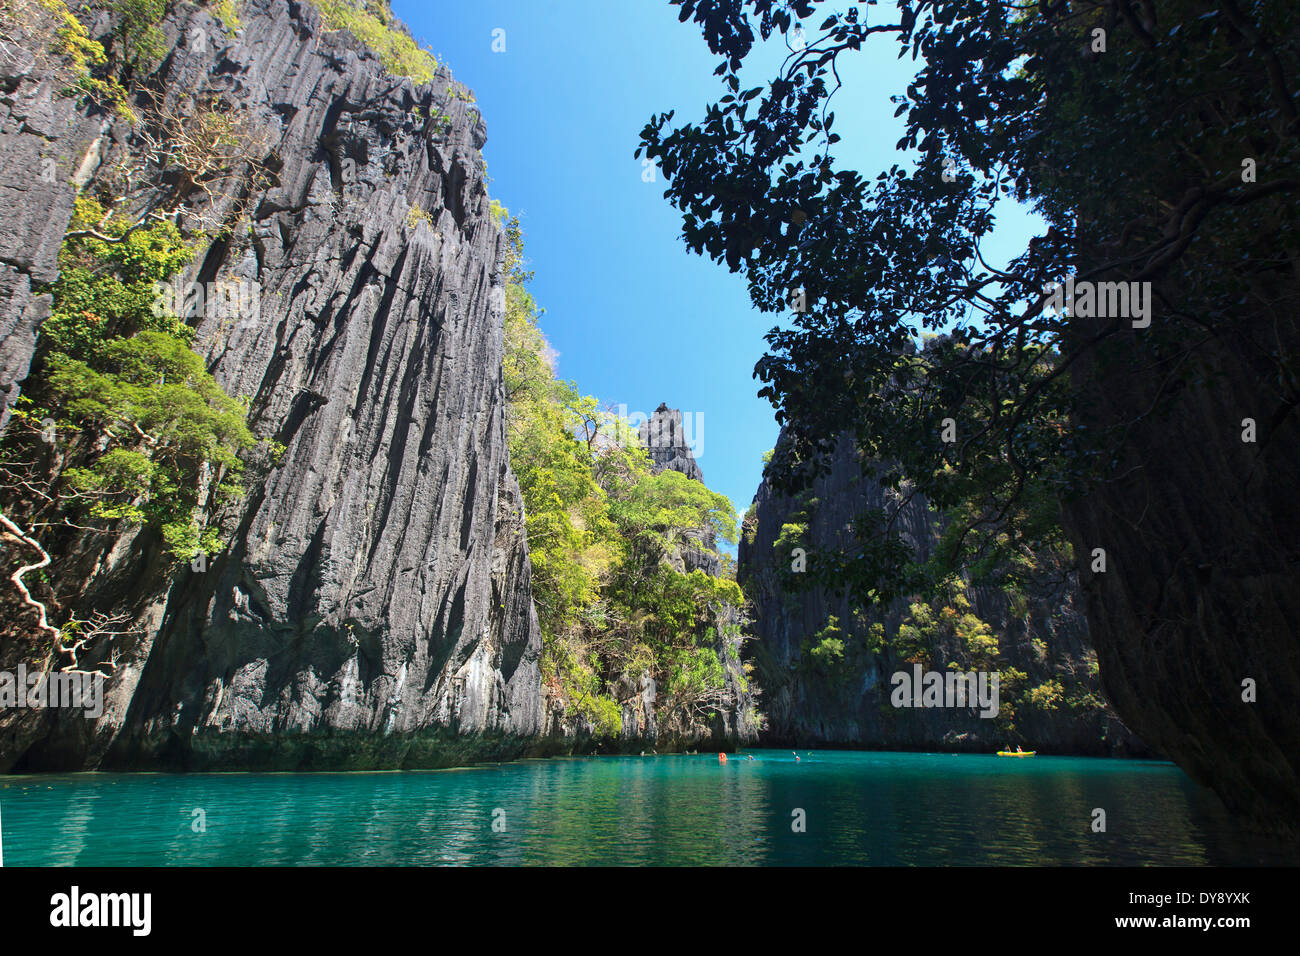 Philippines, Palawan, El Nido, docks de Miniloc Island, Big Lagoon Photo Stock